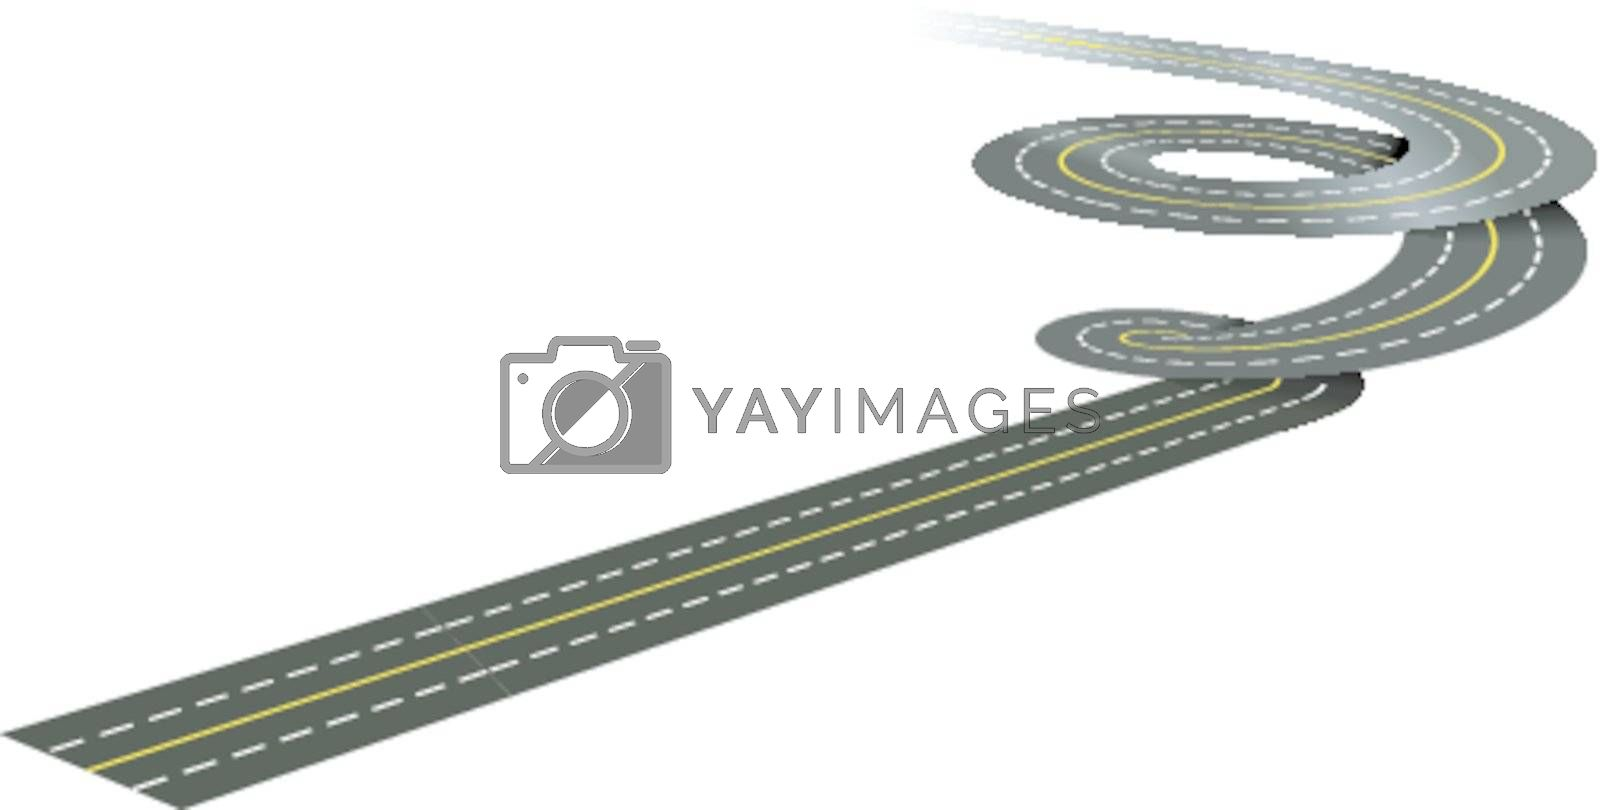 Spiral road concept illustration isolated on white background